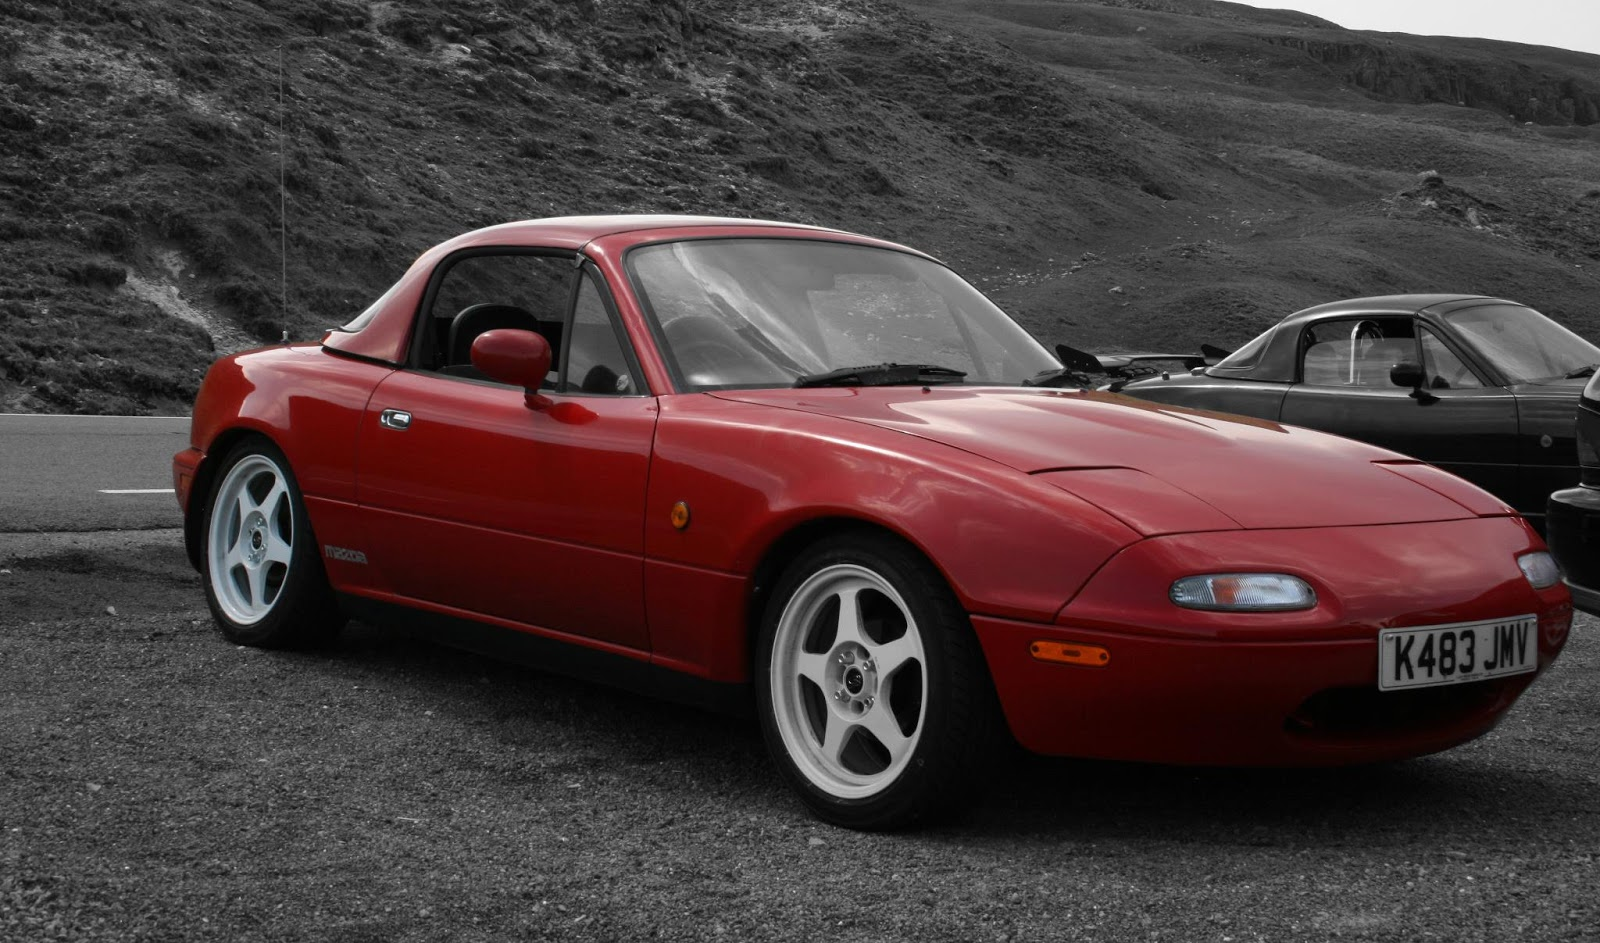 black and white photo with a colorpop of a red mx5 in the centre